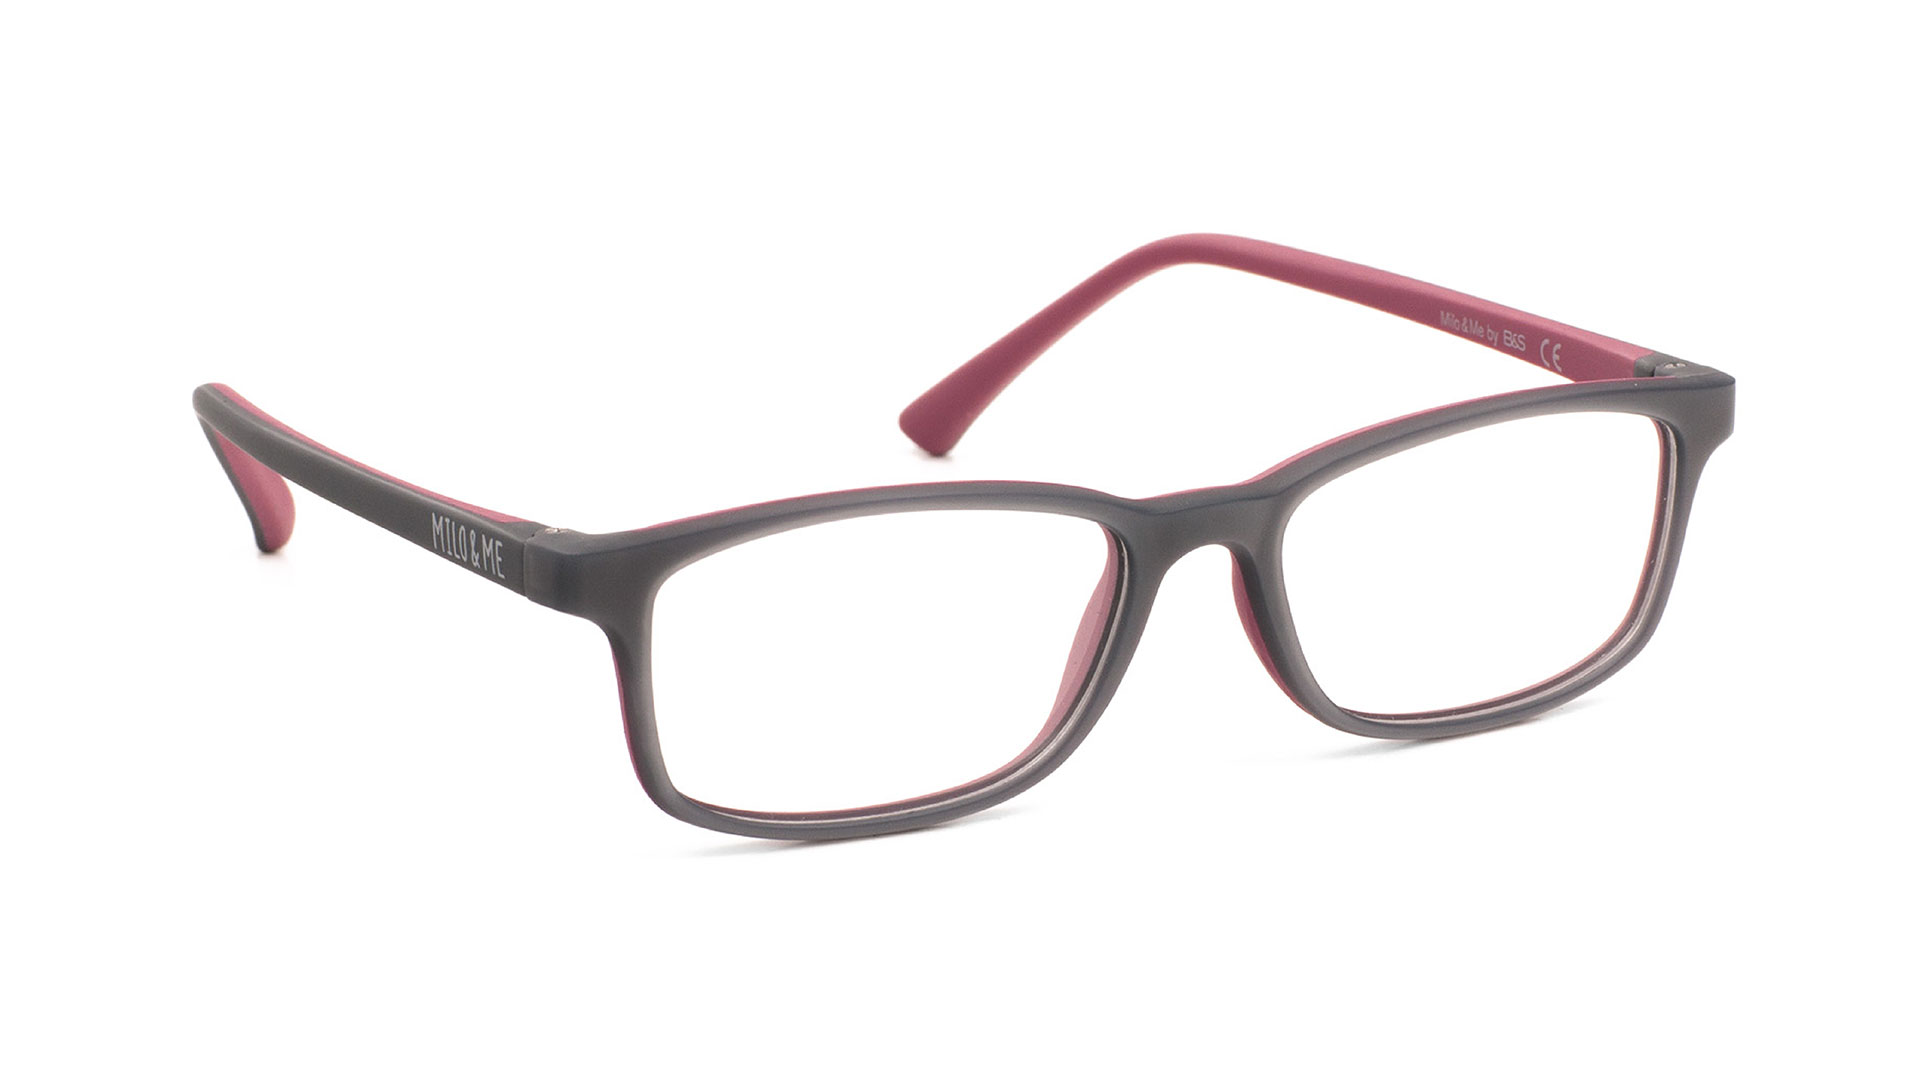 Grey Blackberry H85031-22 - Milo & Me Eyewear - Optimum RX Lens Specialists